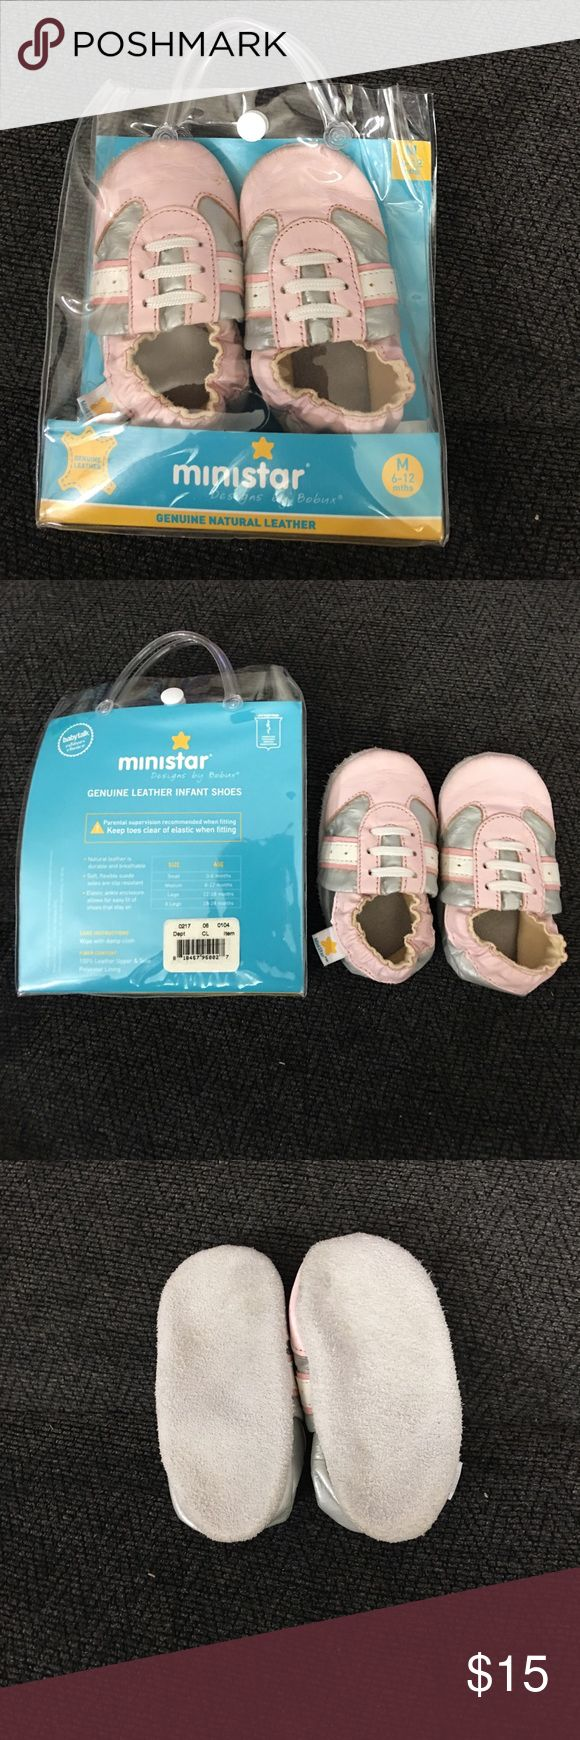 Leather Crib Shoes Brand new never worn! Very cute! ministar Shoes Baby & Walker